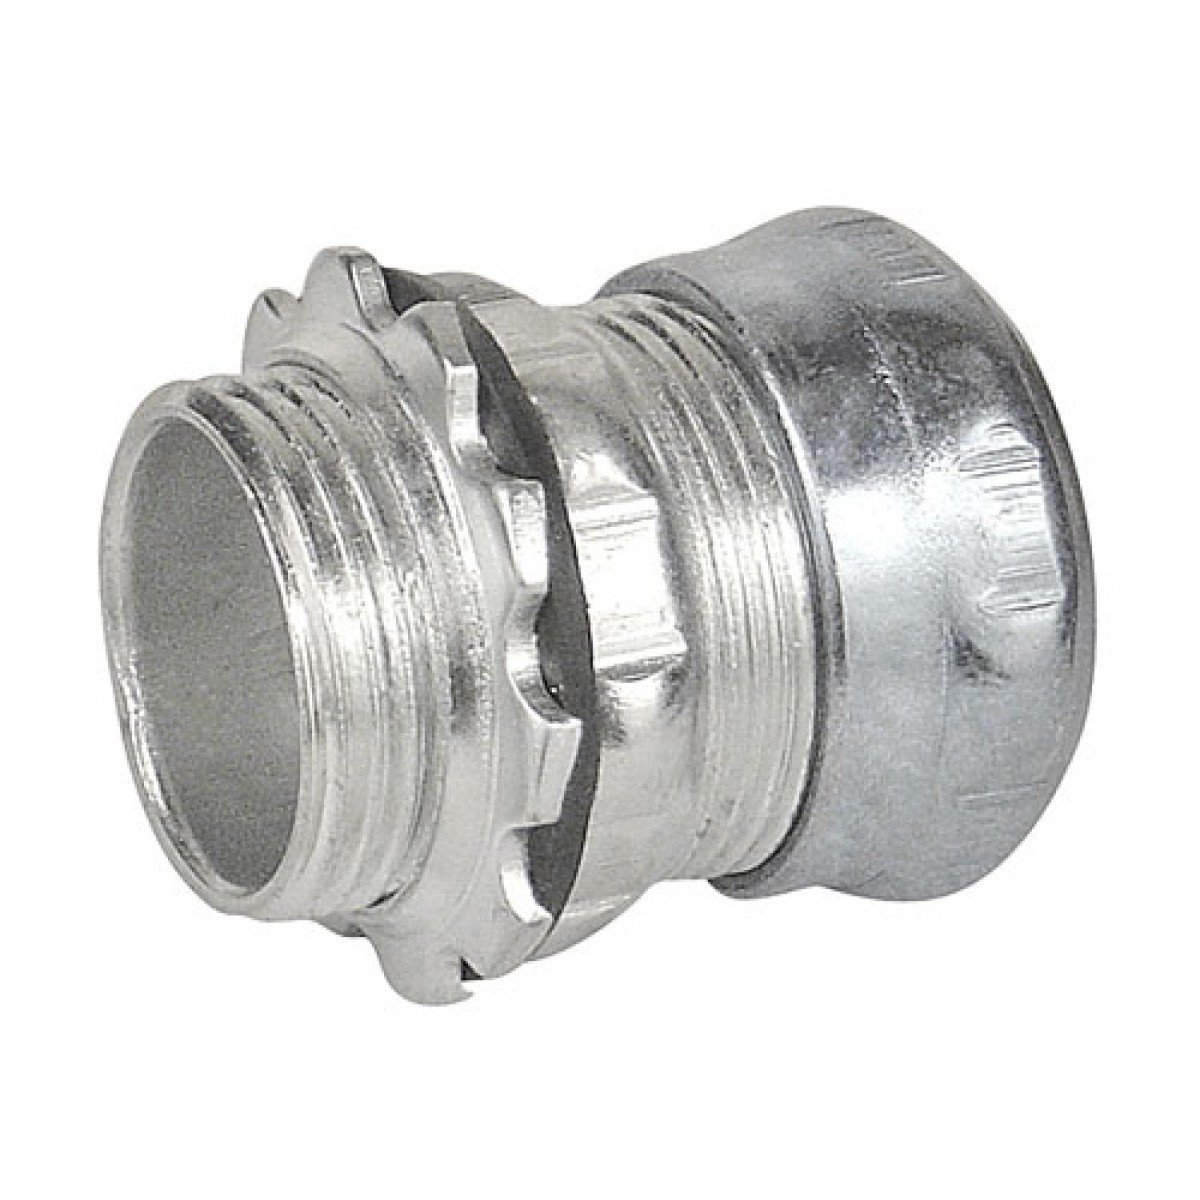 3//4 Trade Size Steel Insulated Throat Morris Products 14981 EMT Rain Tight Compression Connector